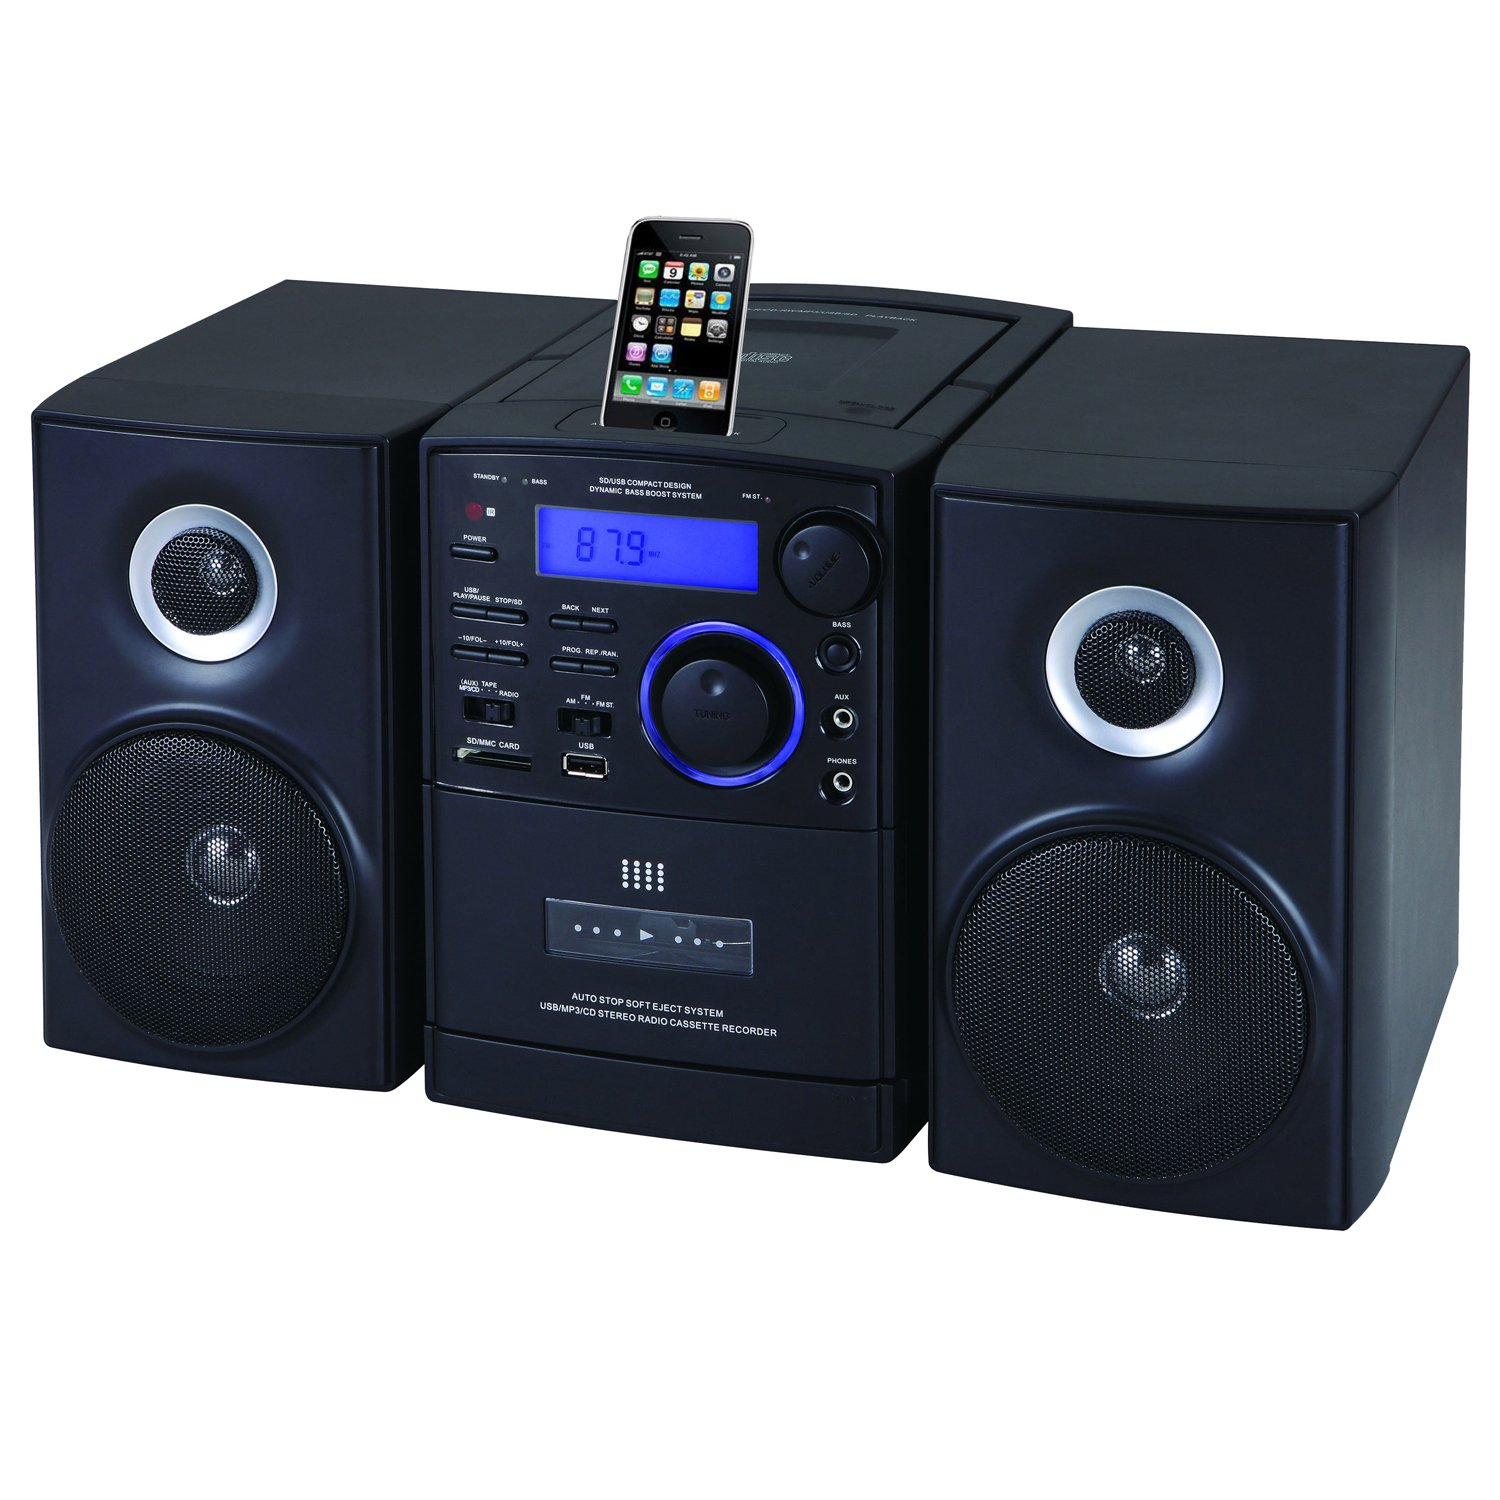 mp3 cd player am fm radio cassette recorder w ipod iphone docking usb sd aux ebay. Black Bedroom Furniture Sets. Home Design Ideas